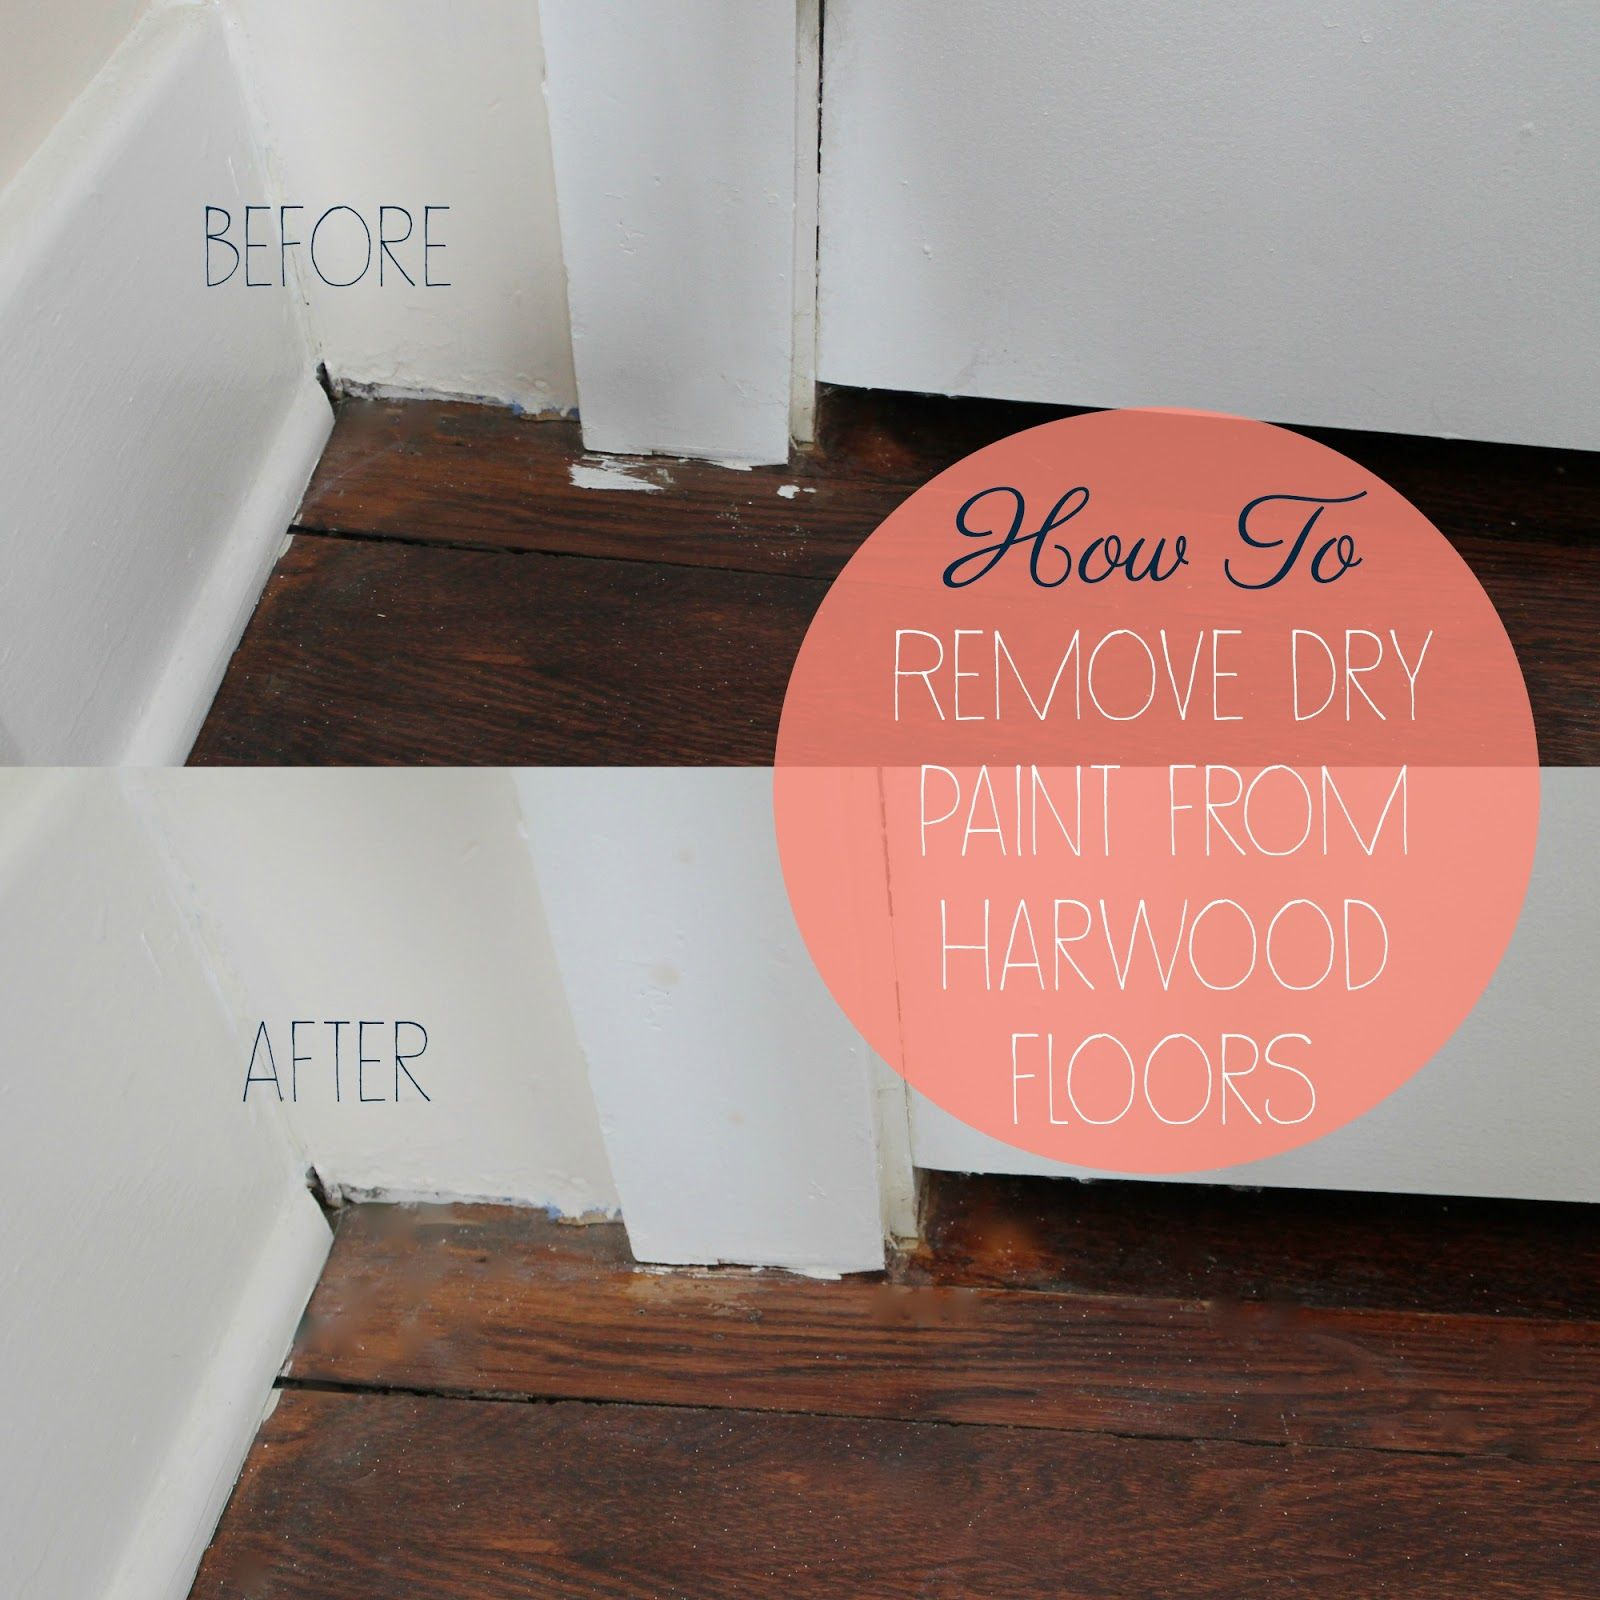 Here Is A Super Quick And Easy Way To Remove Dry, Old